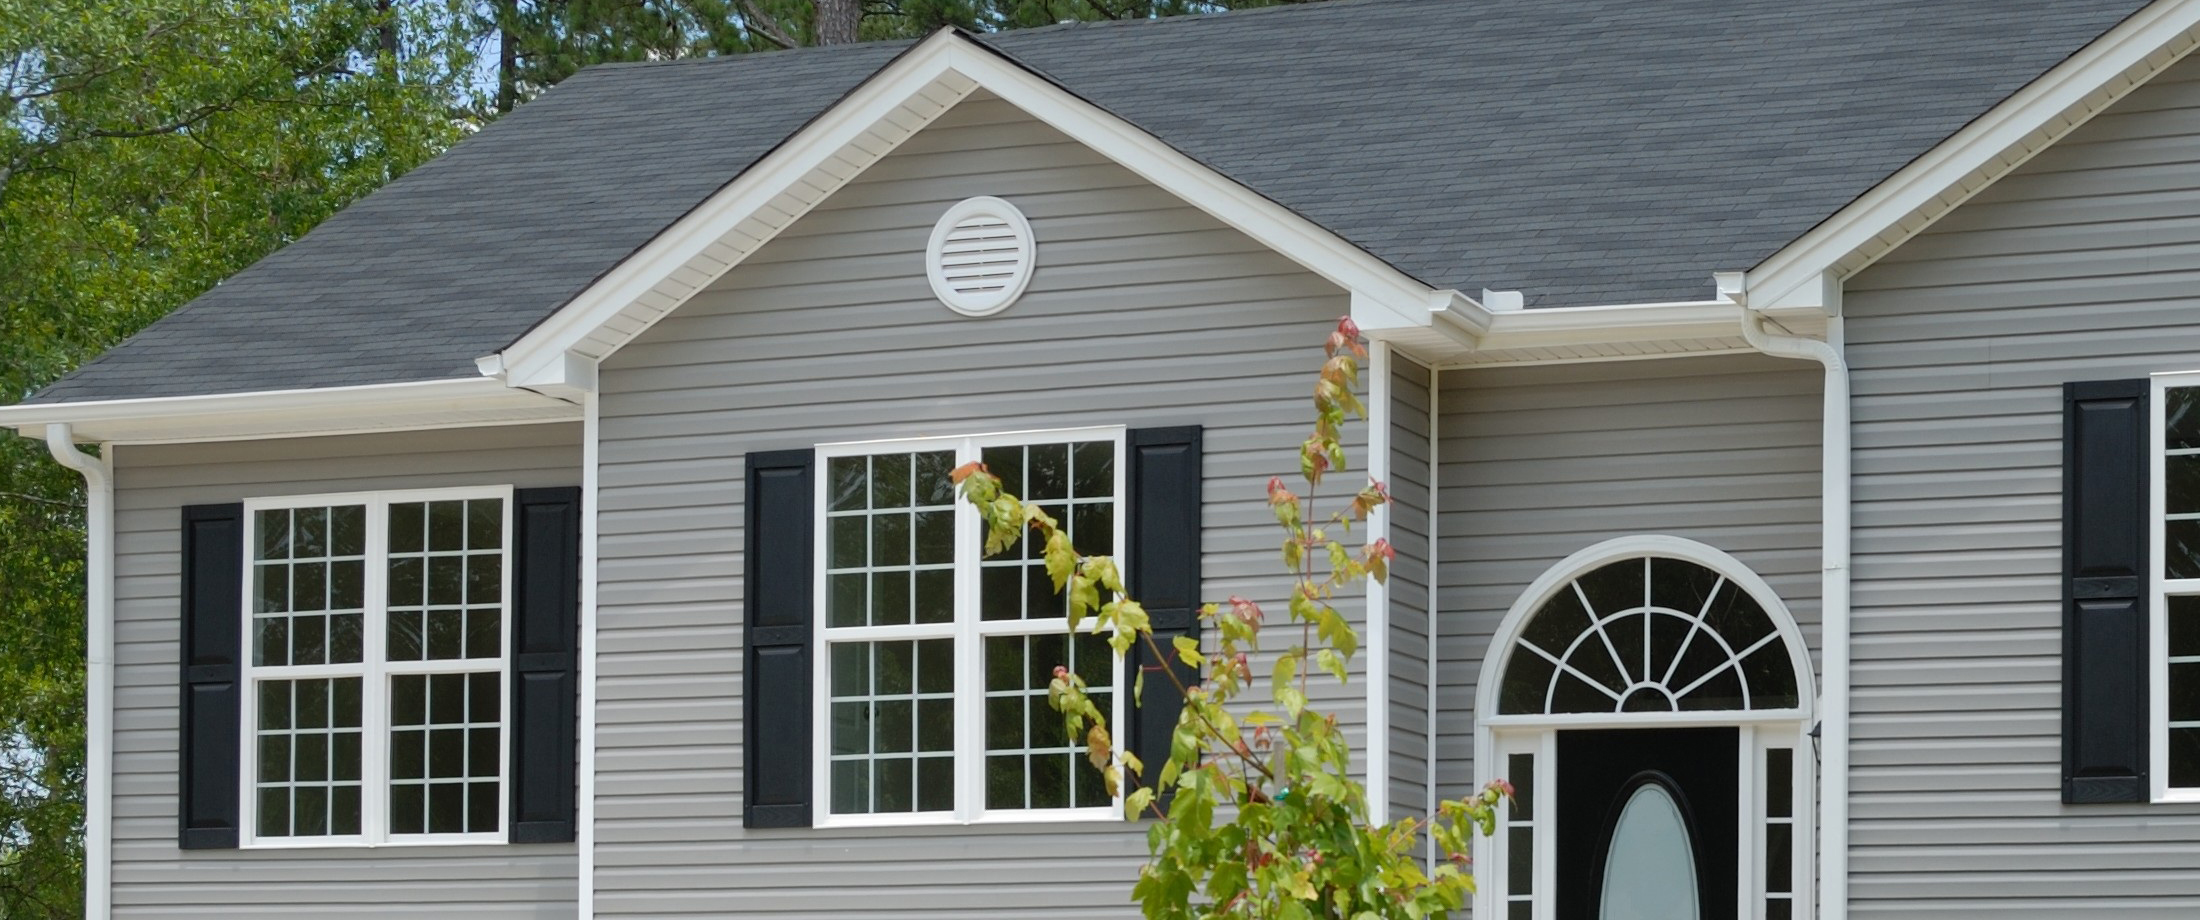 Do You Need Siding Replaced?